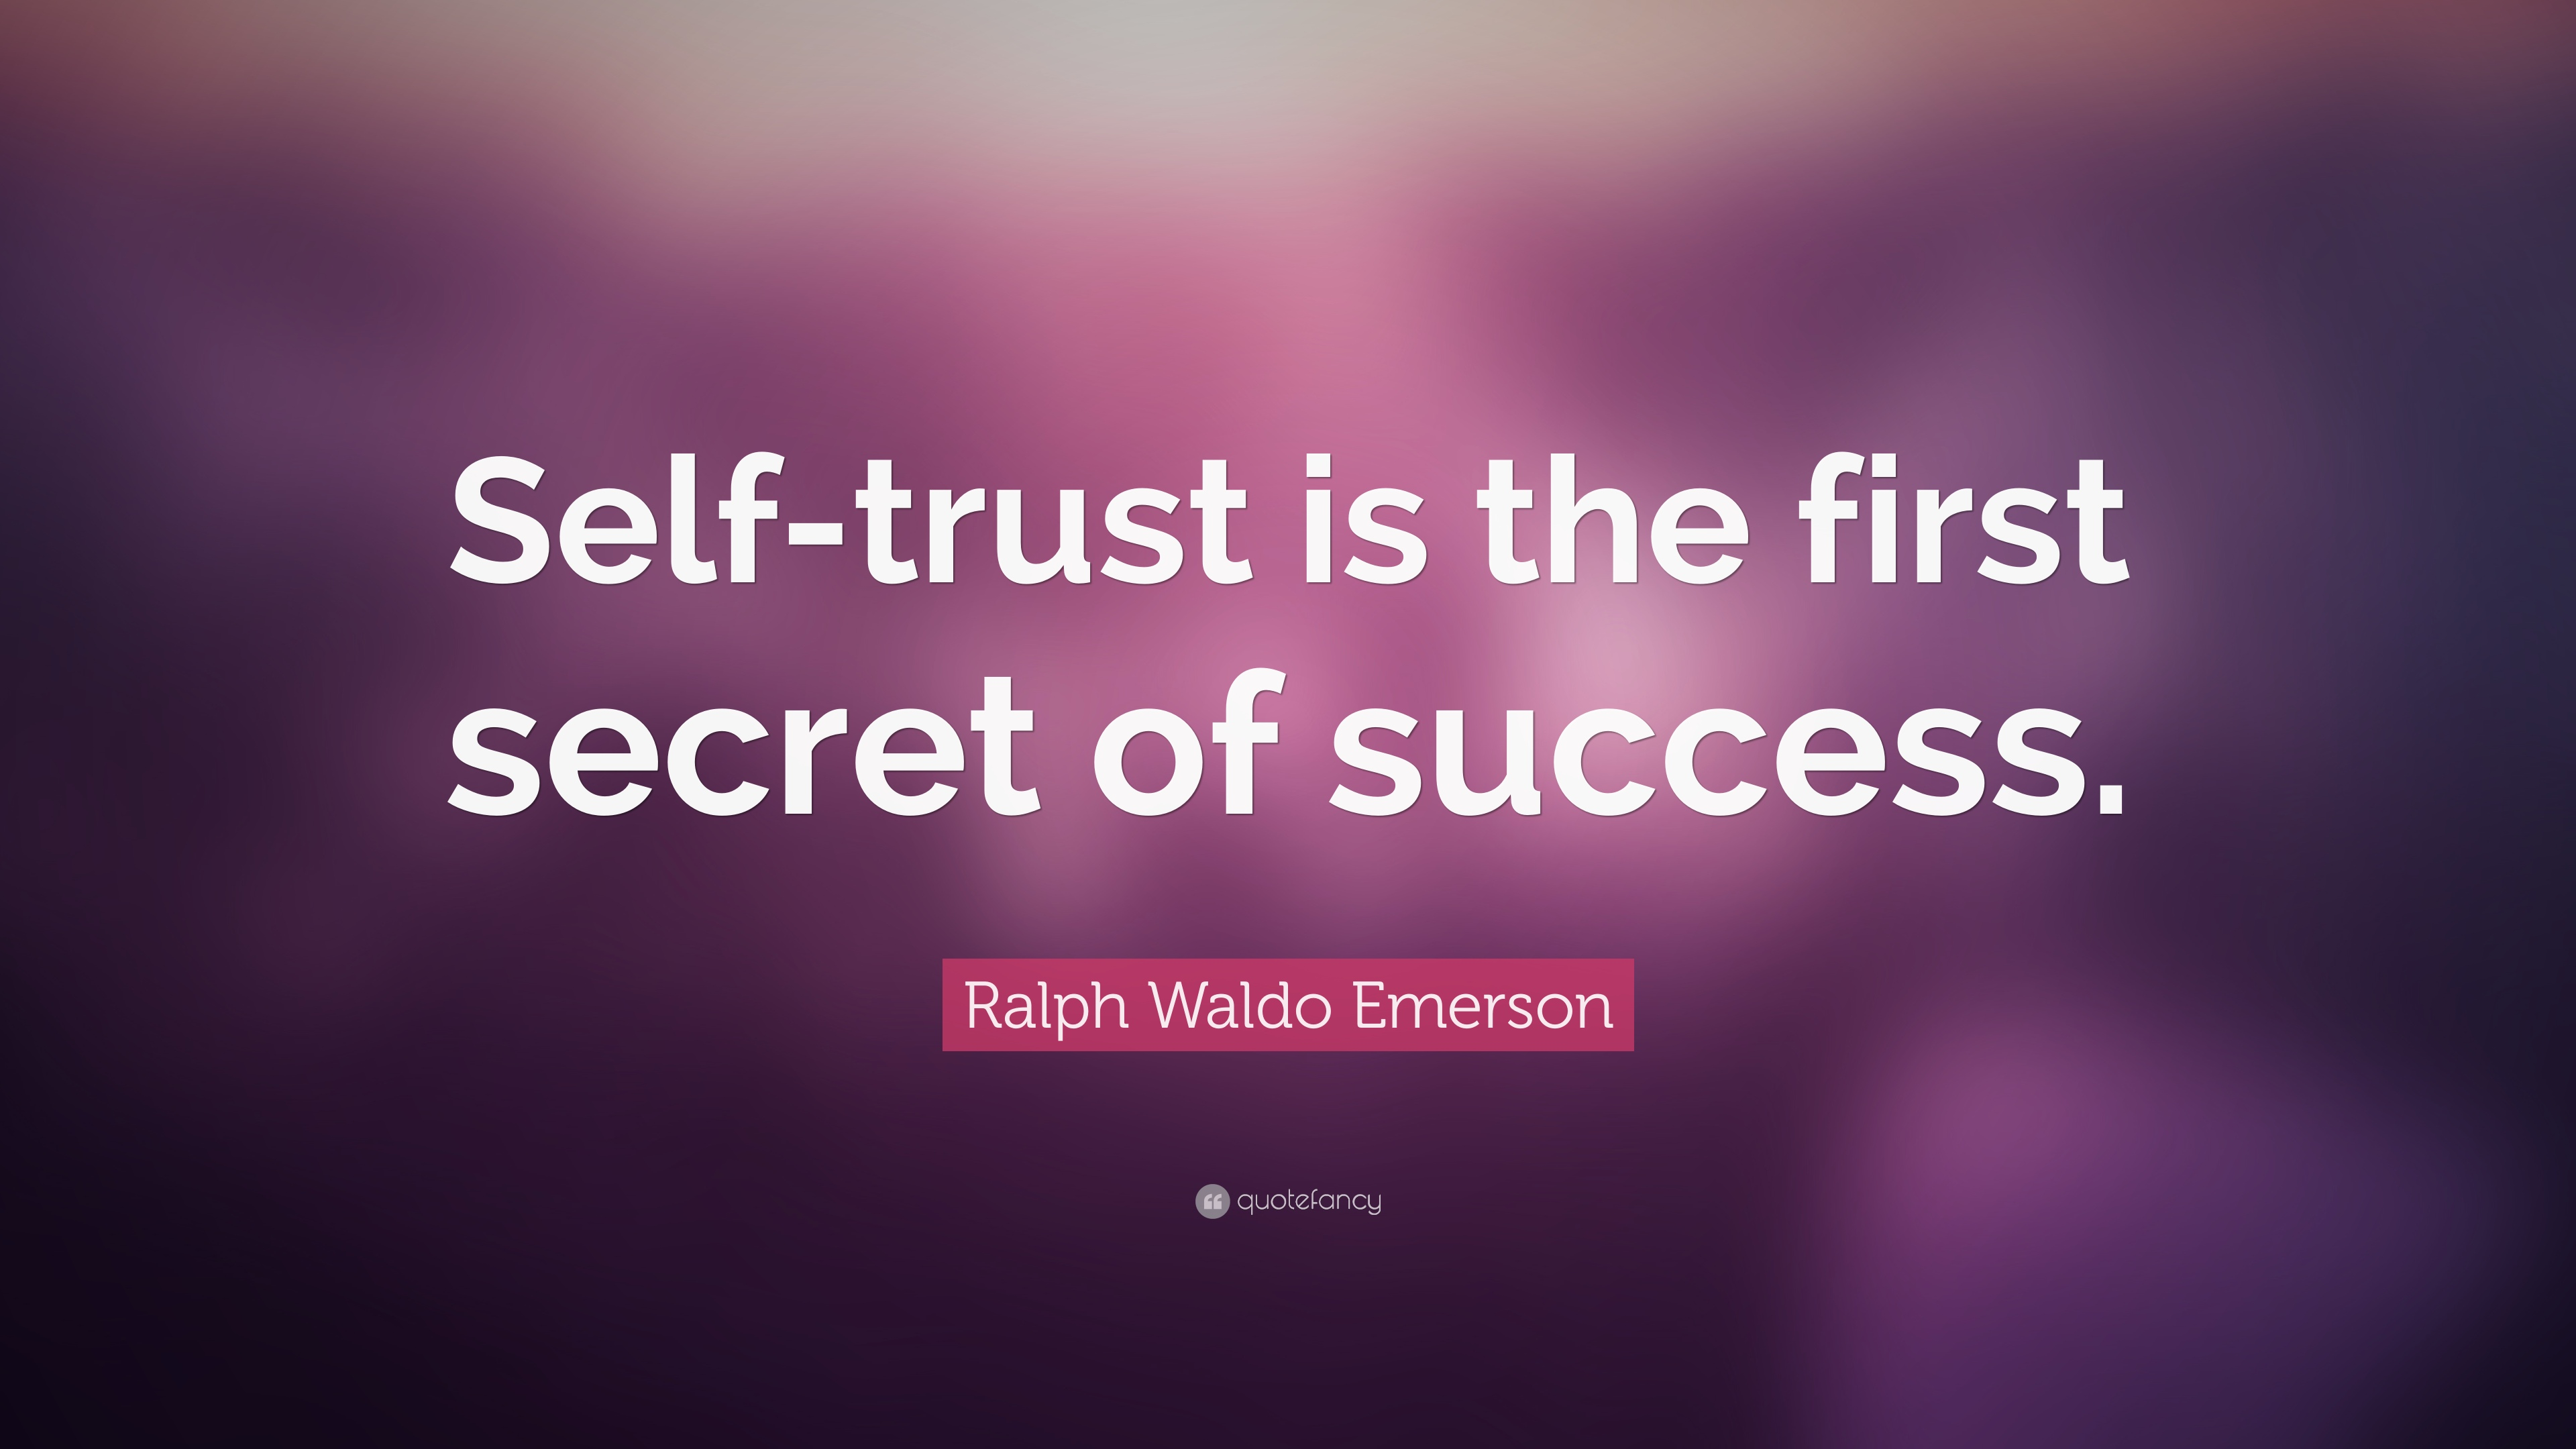 Quotes About Trust  44 wallpapers    Quotefancy Quotes About Trust     Self trust is the first secret of success